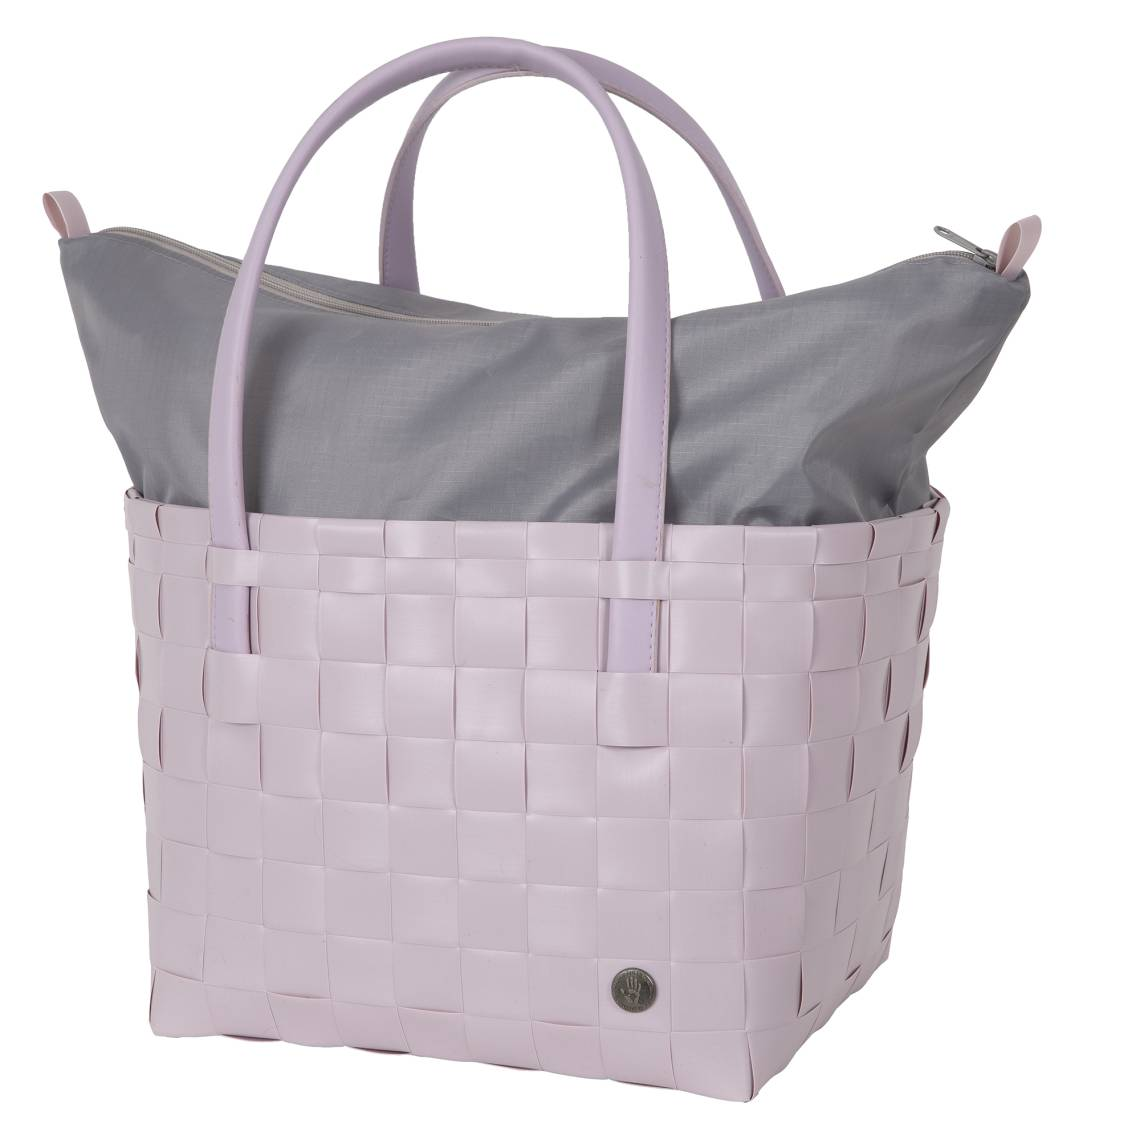 Handed By - COLOR DELUXE - Soft lilac